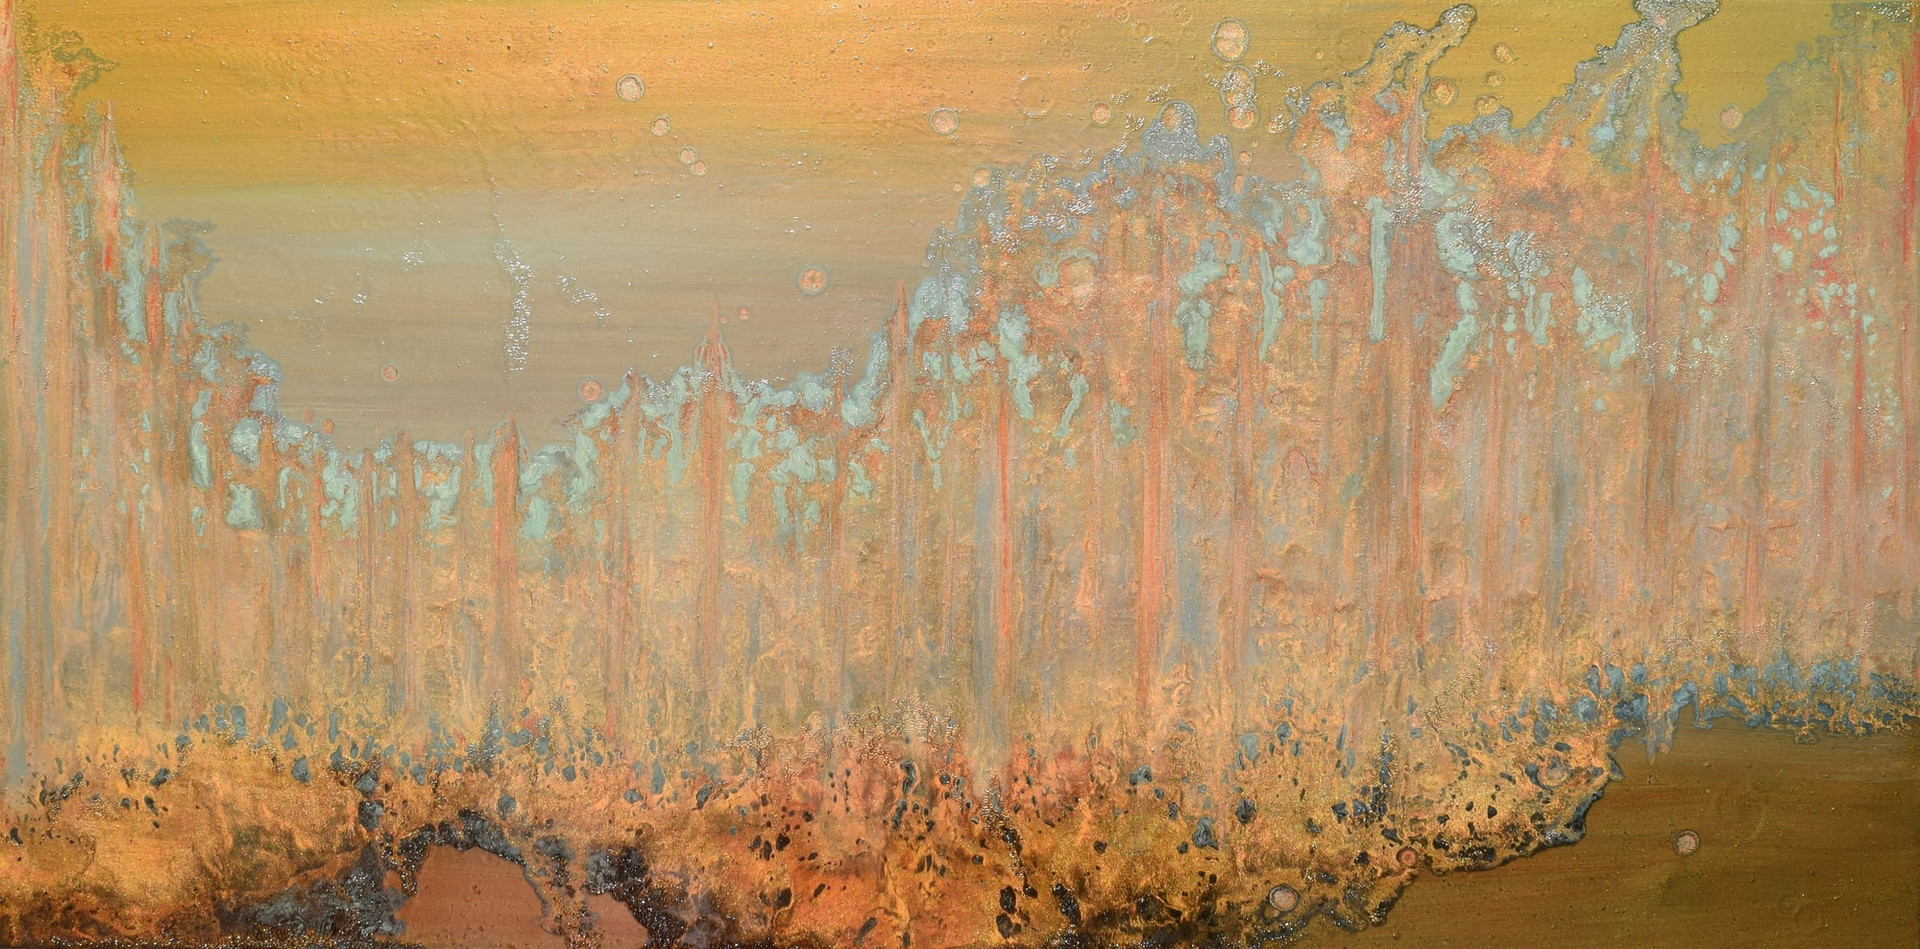 Faultline 24 x 48 inches oil and metallic pigment on panel SOLD